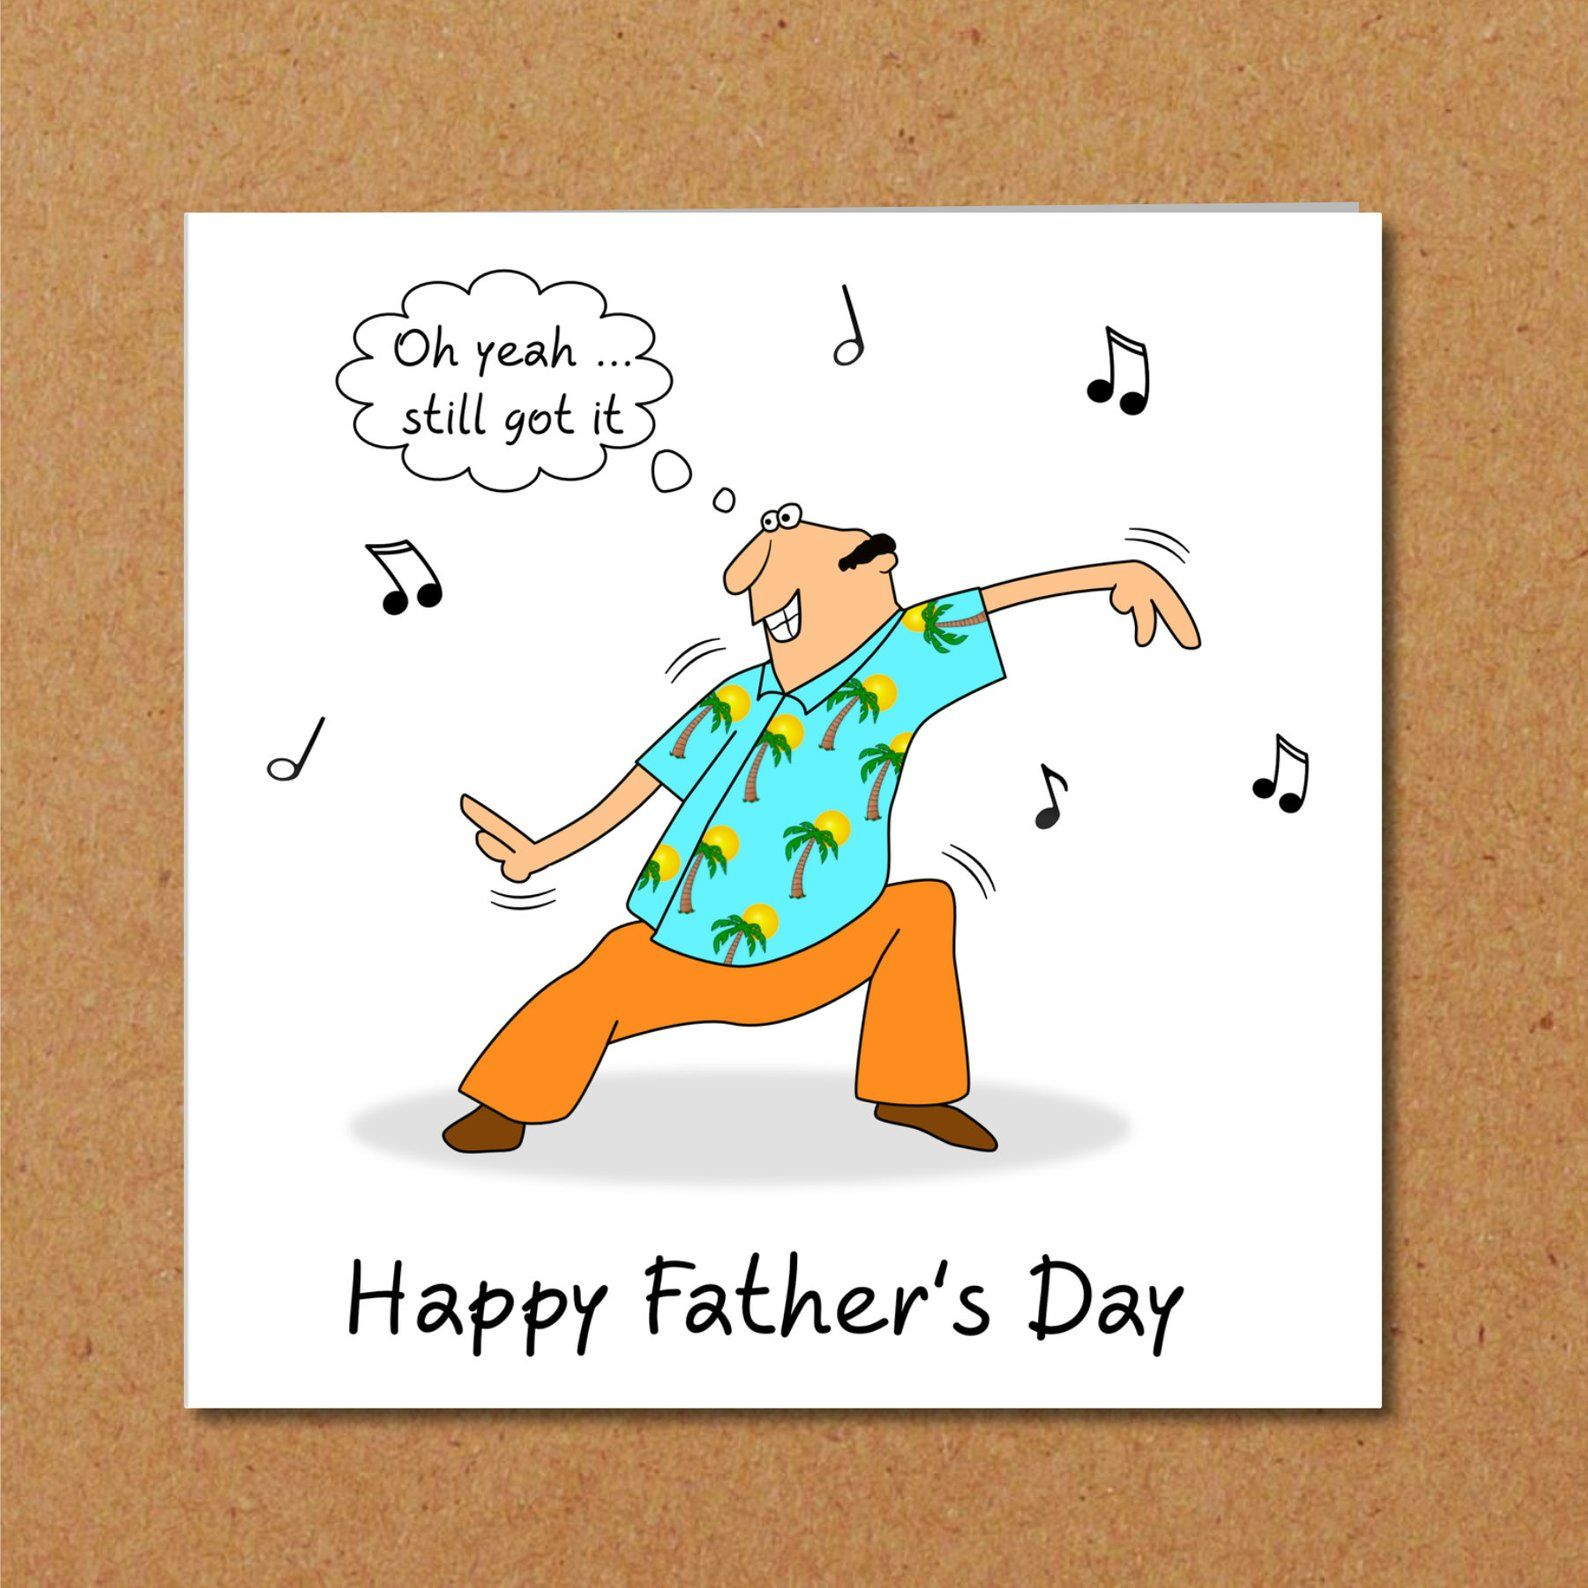 Funny Fathers Day Card Dad dancing humorous, amusing